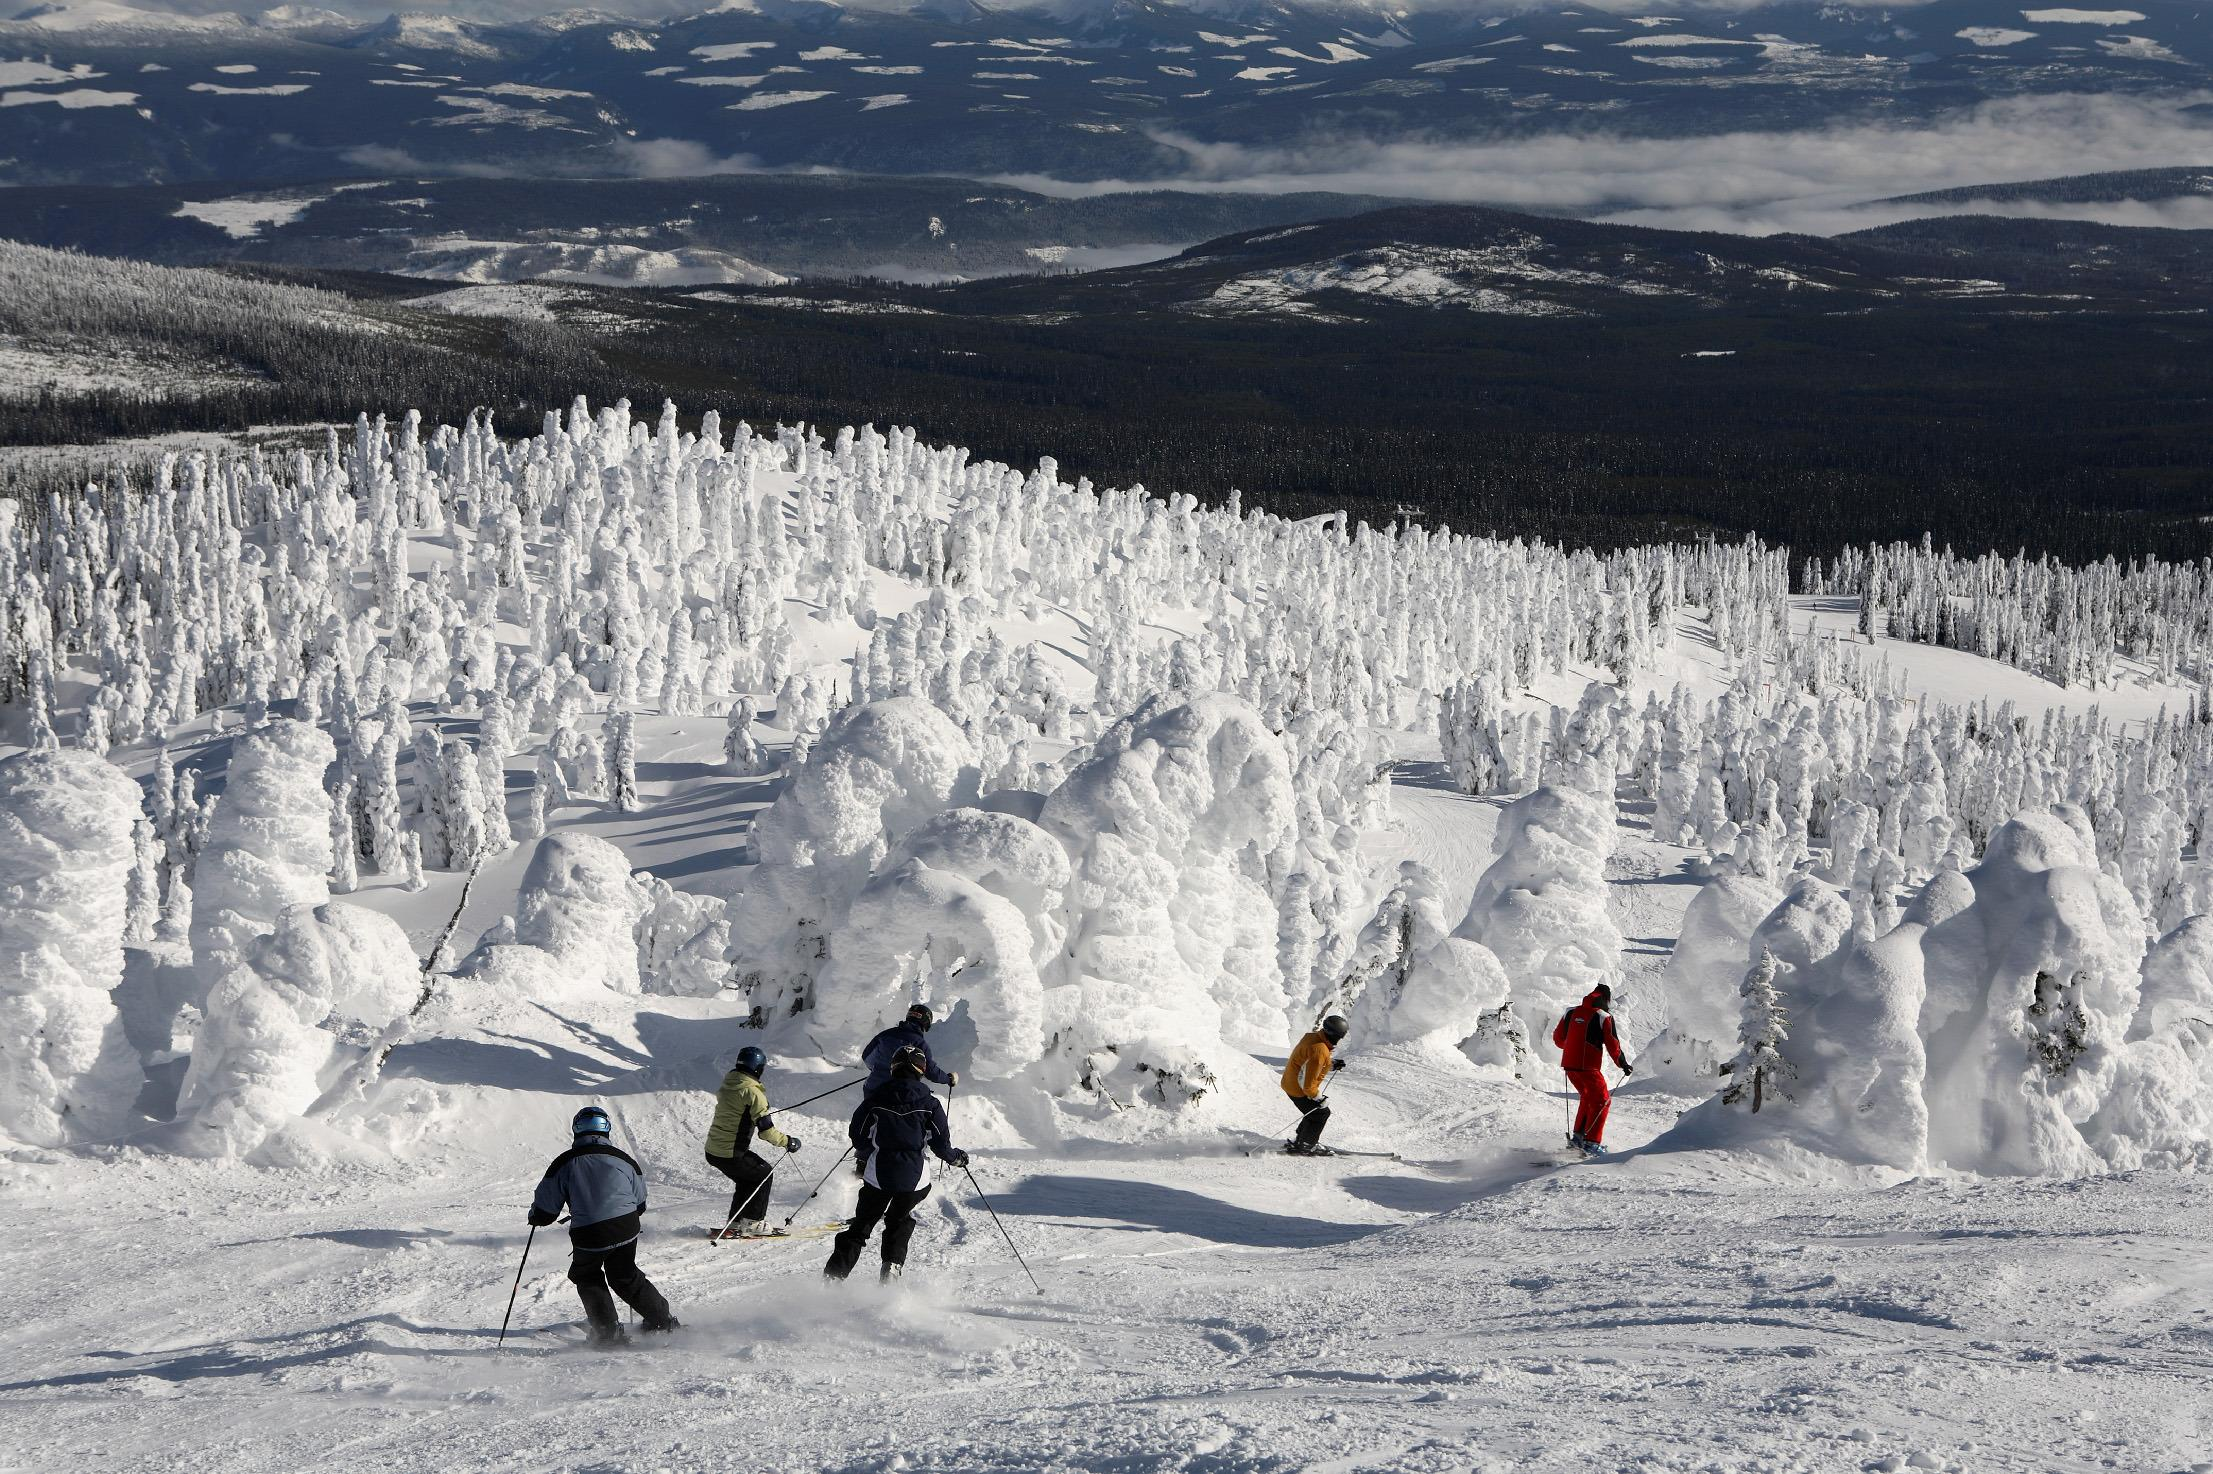 "The Big White ski resort in <a href=""http://www.hellobc.com/HelloBC/CMSPages/ski.htm"" target=""_blank"">British Columbia</a>."